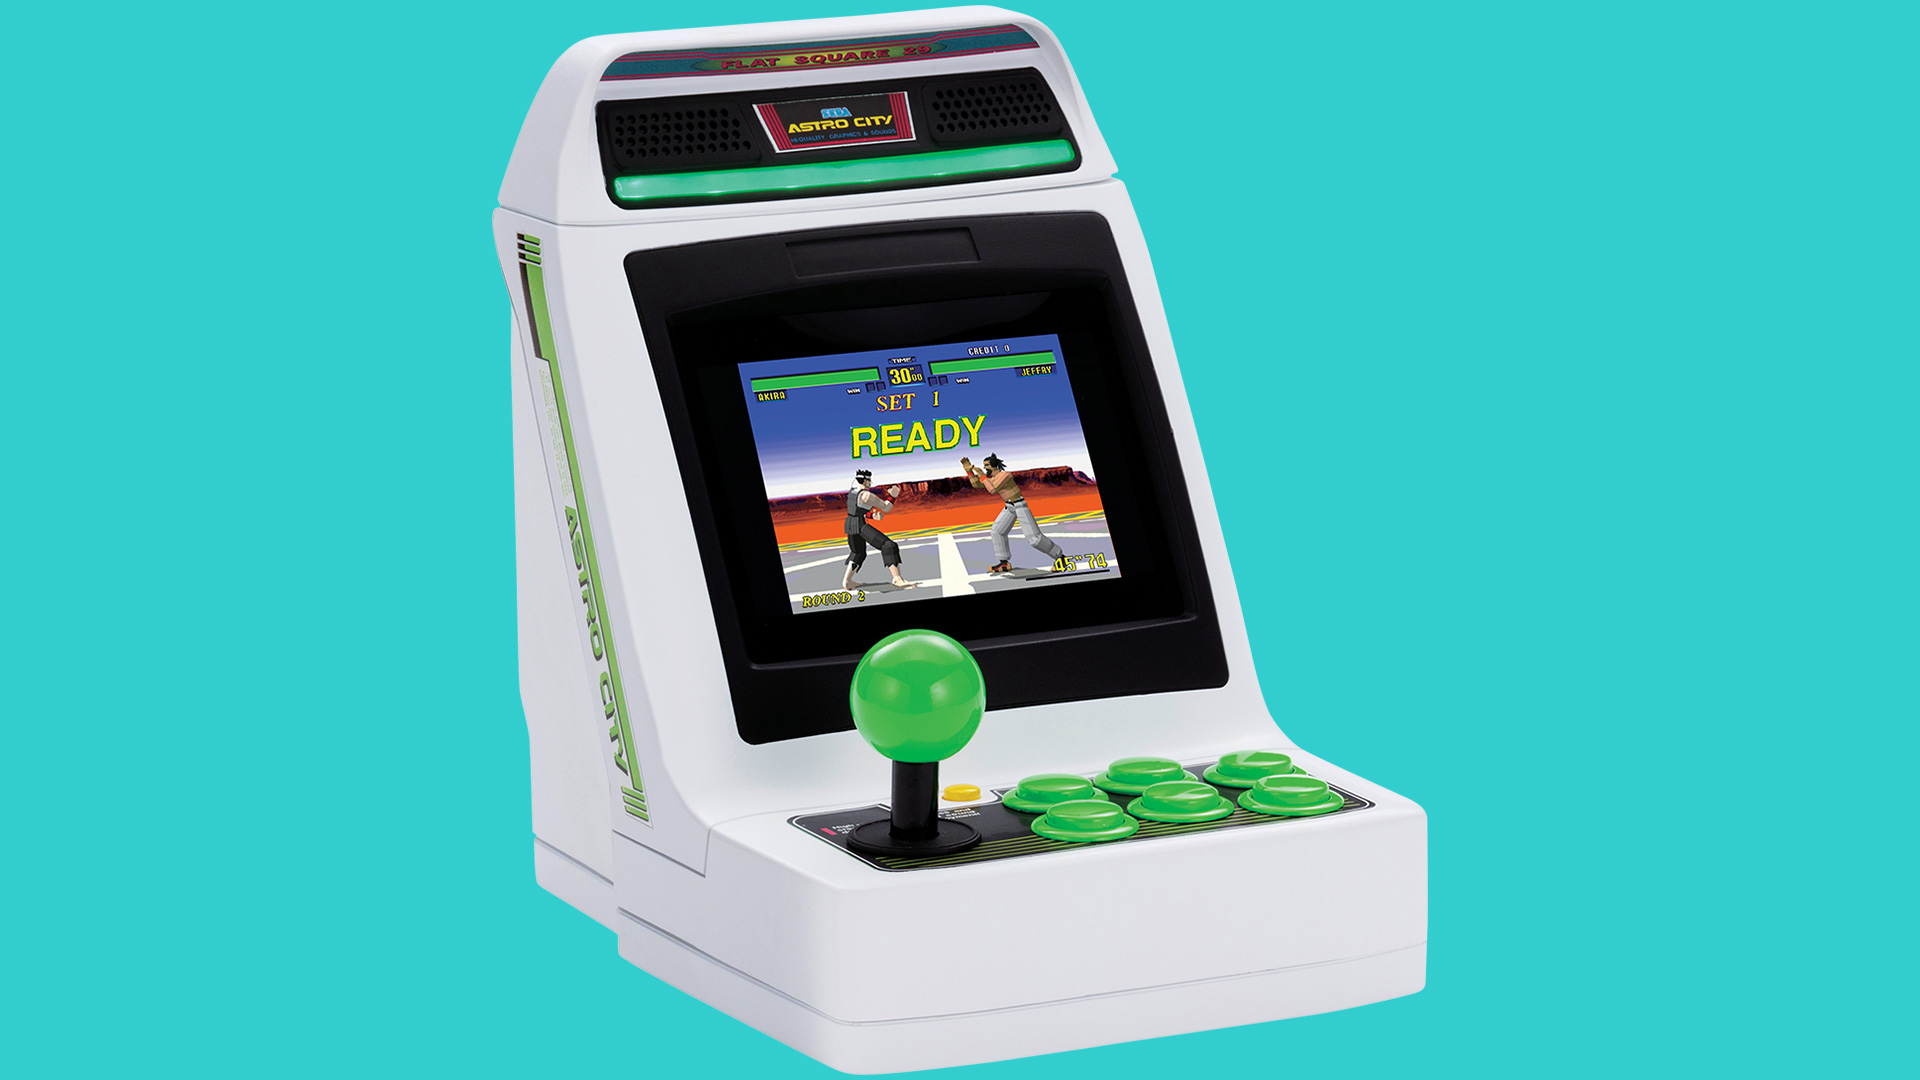 Limited Run Games is selling the Sega Astro City Mini arcade cabinet on Friday screenshot